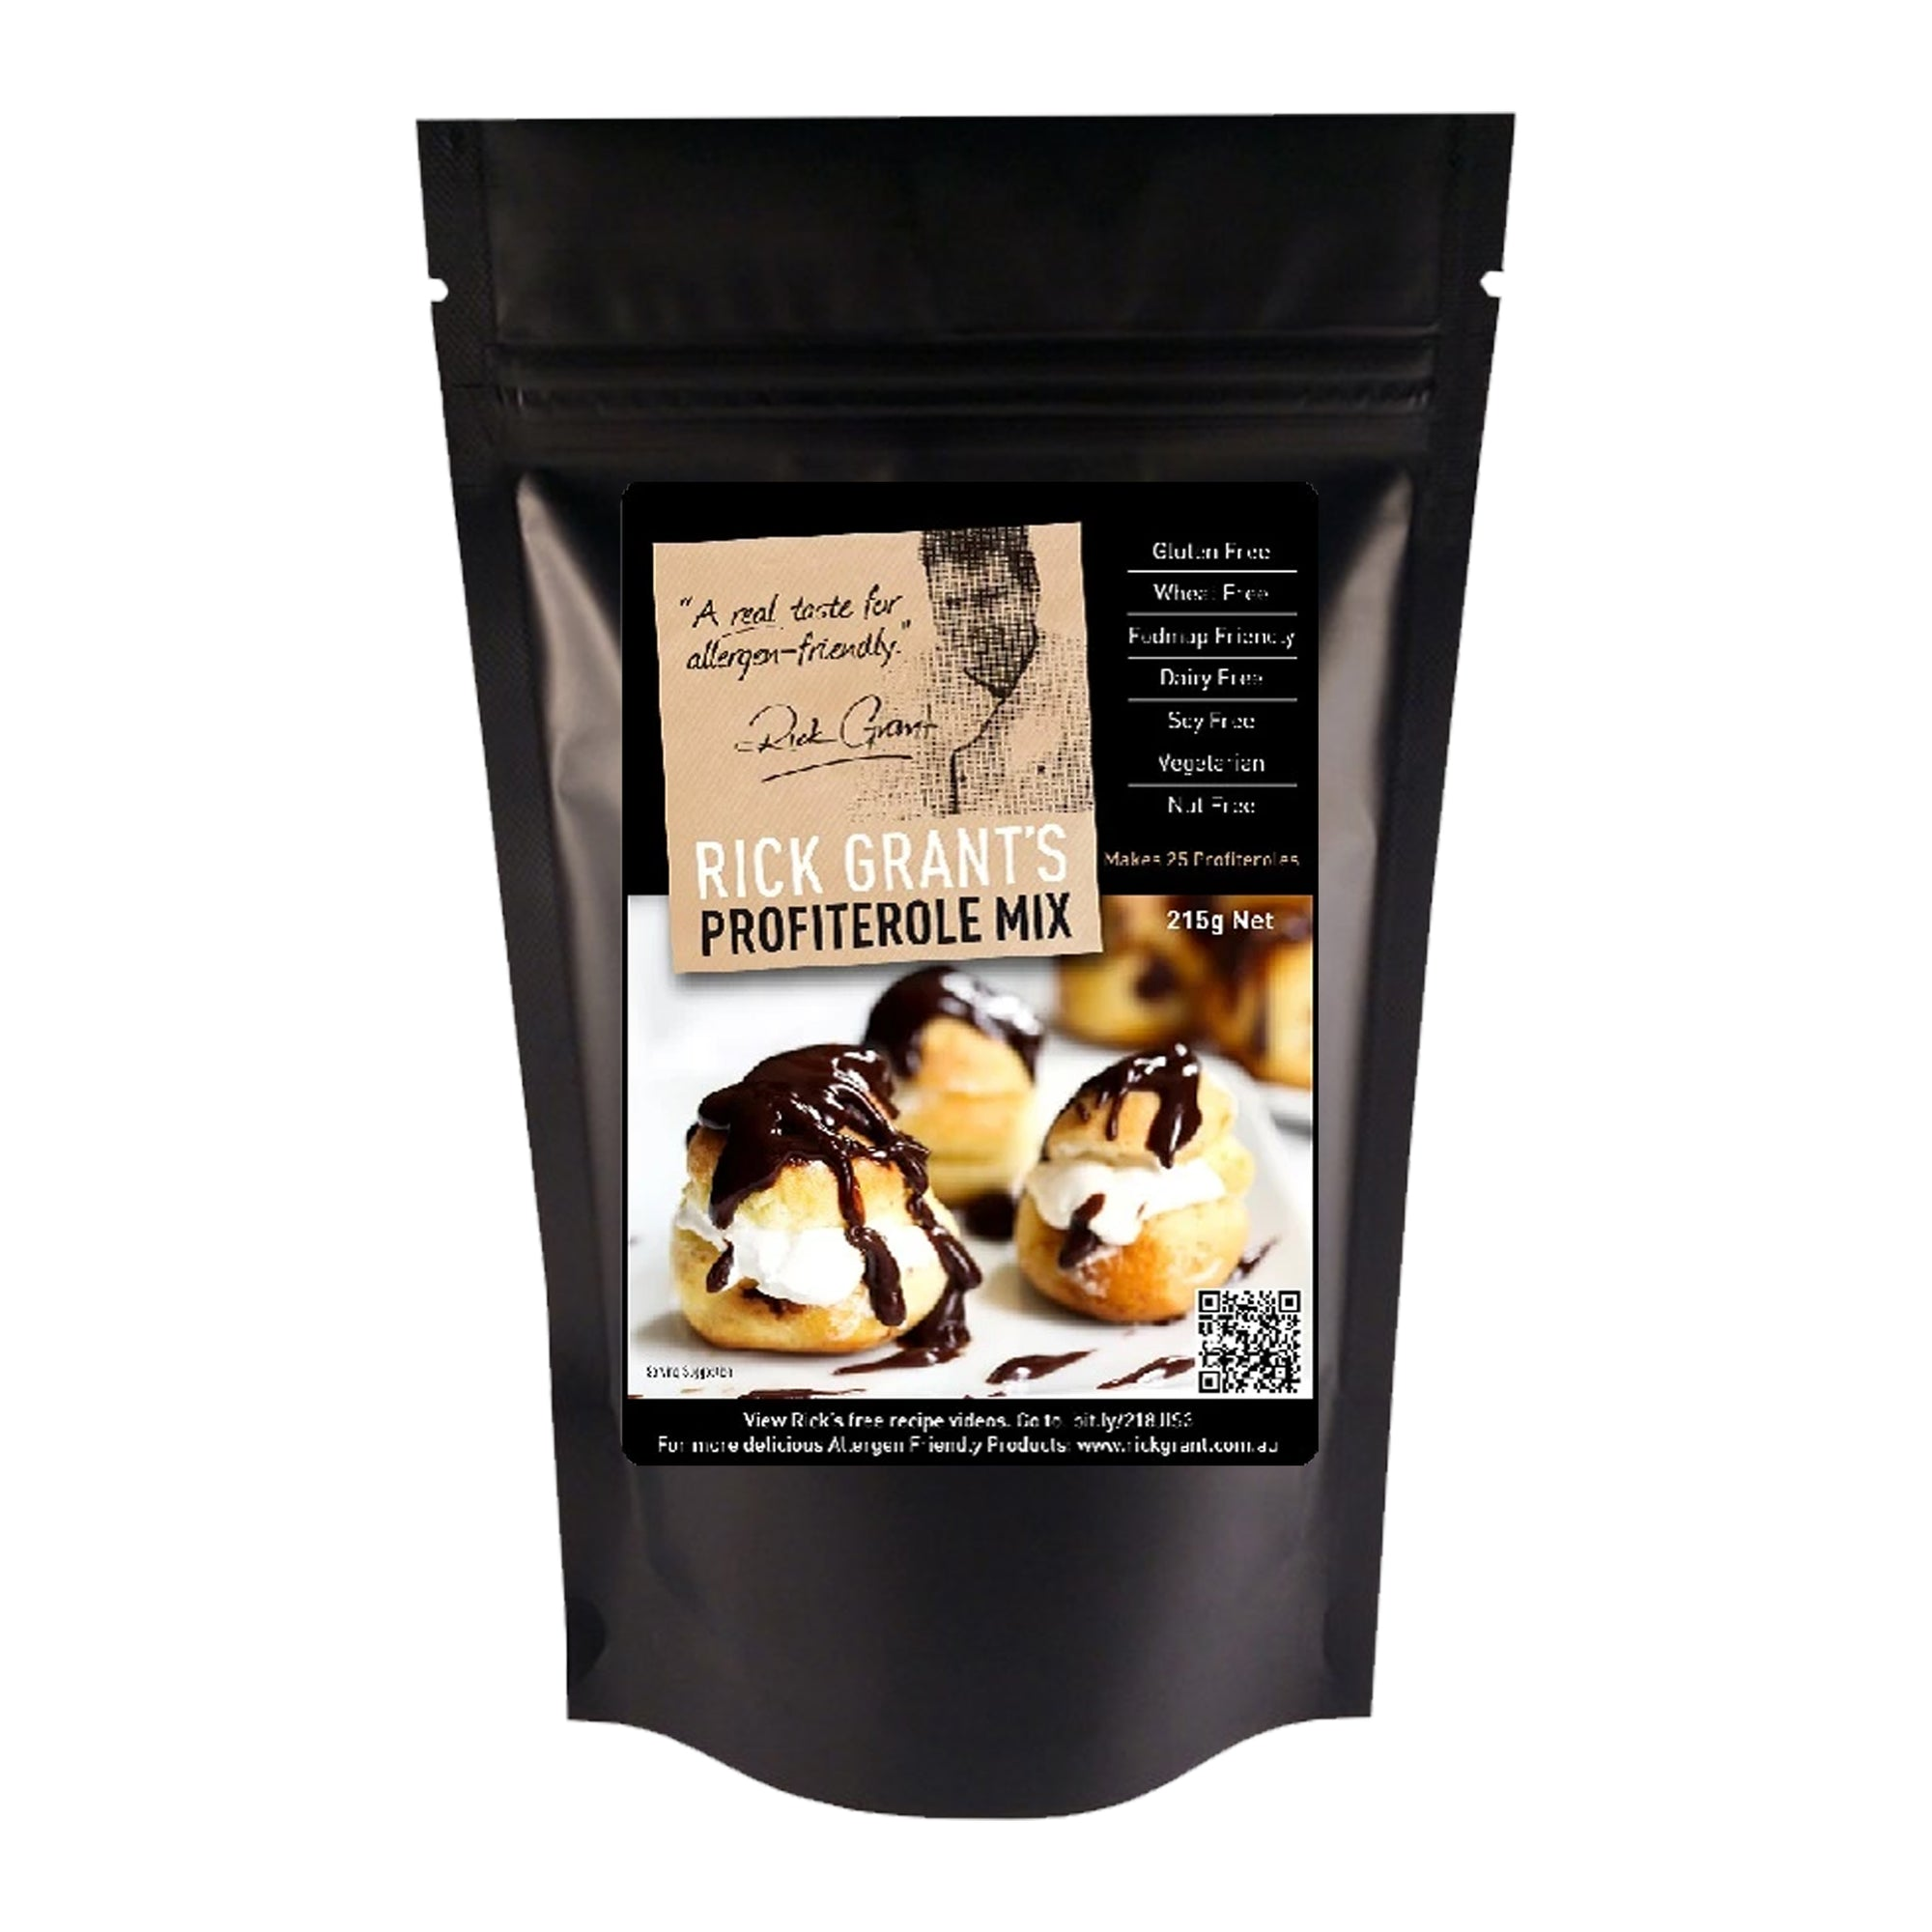 Rick Grants Mix Profiterole 215g